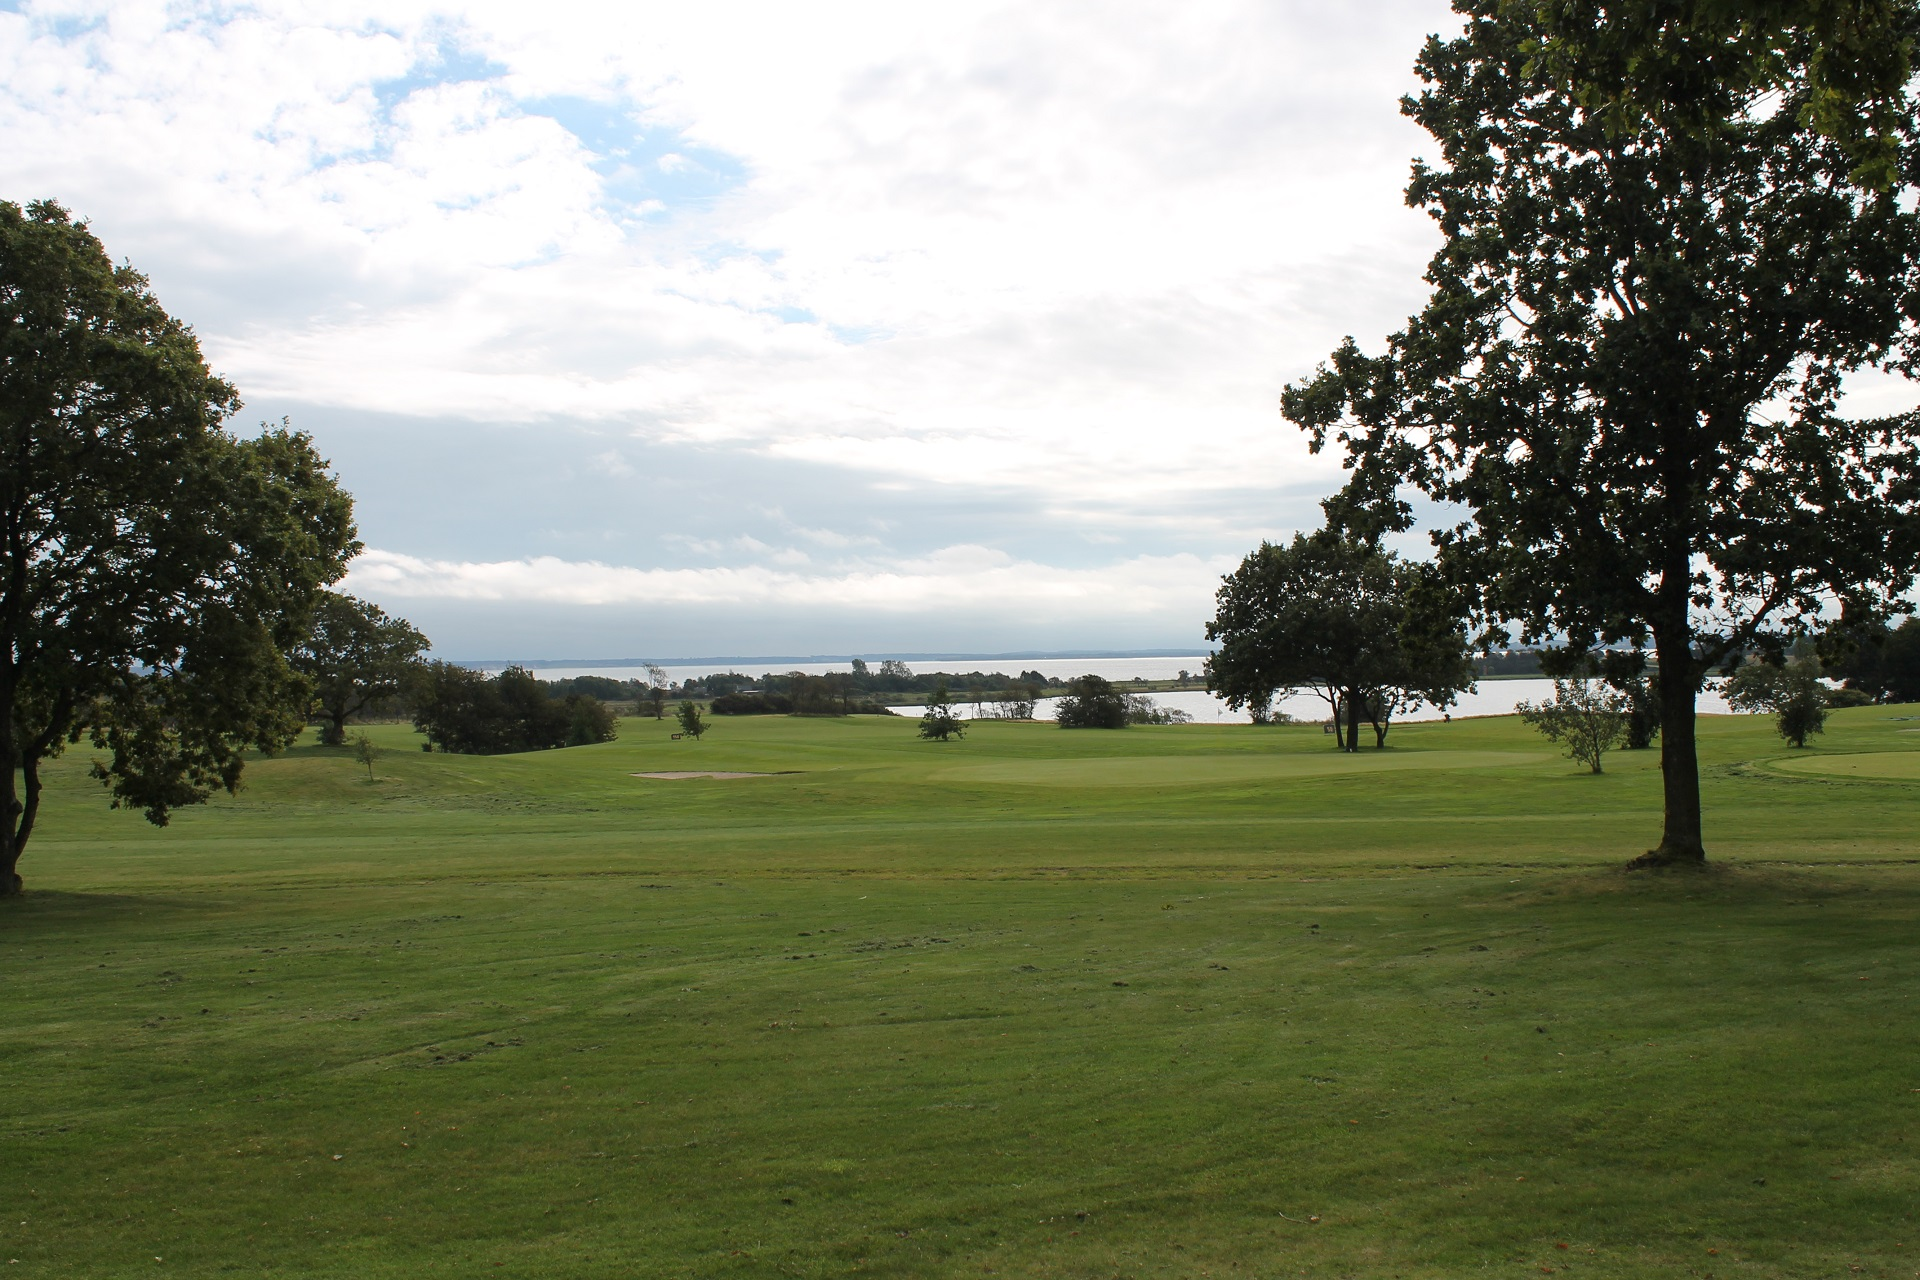 Hvalpsund Golf Club